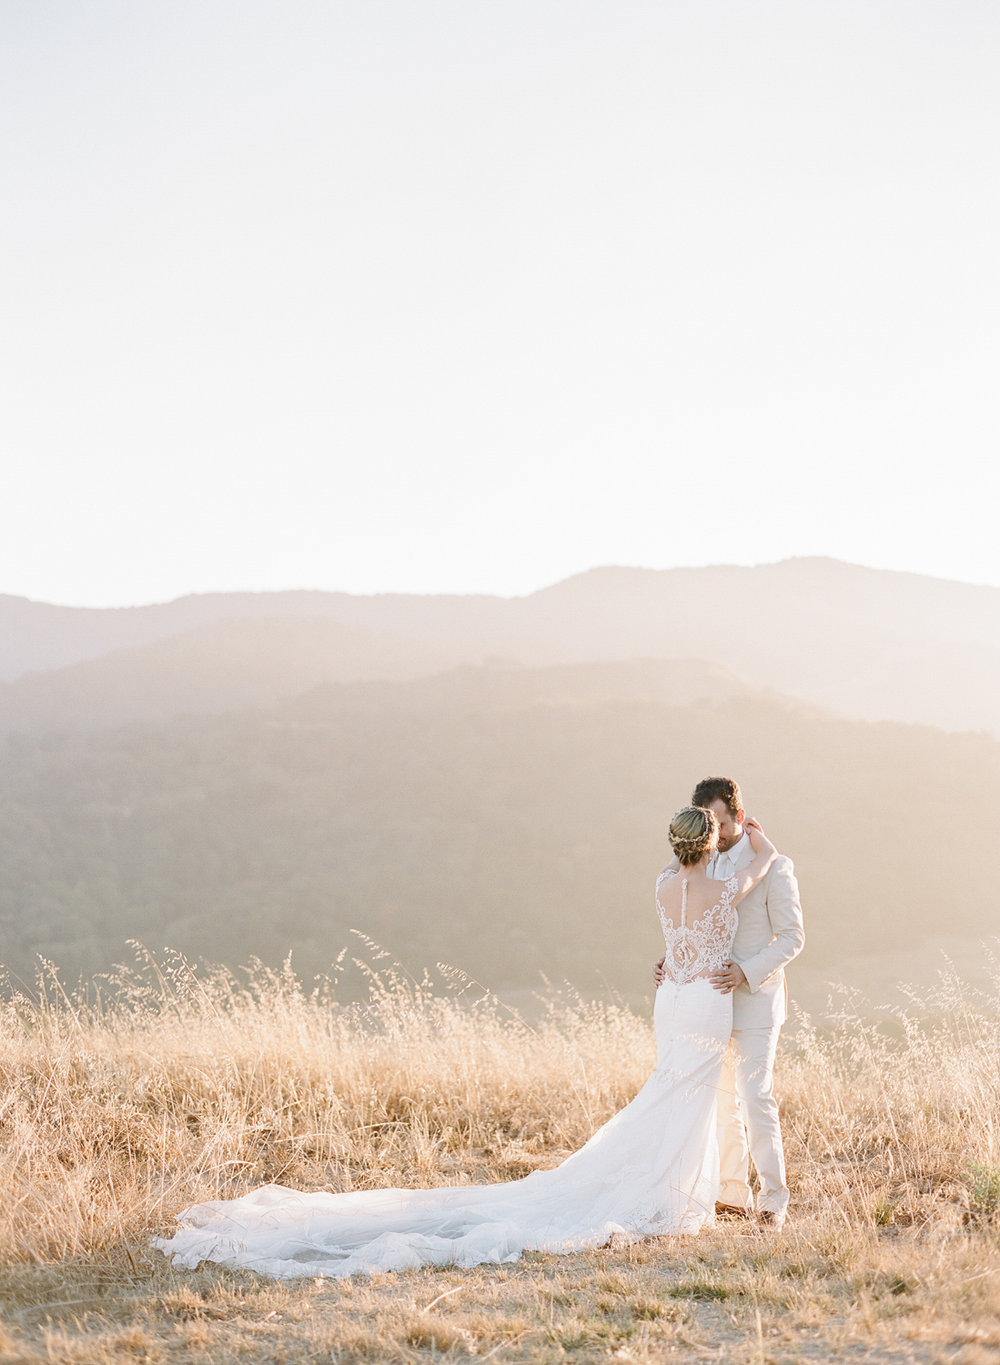 Bride and groom share a romantic moment in a grassy field at sunset; Sylvie Gil Photography